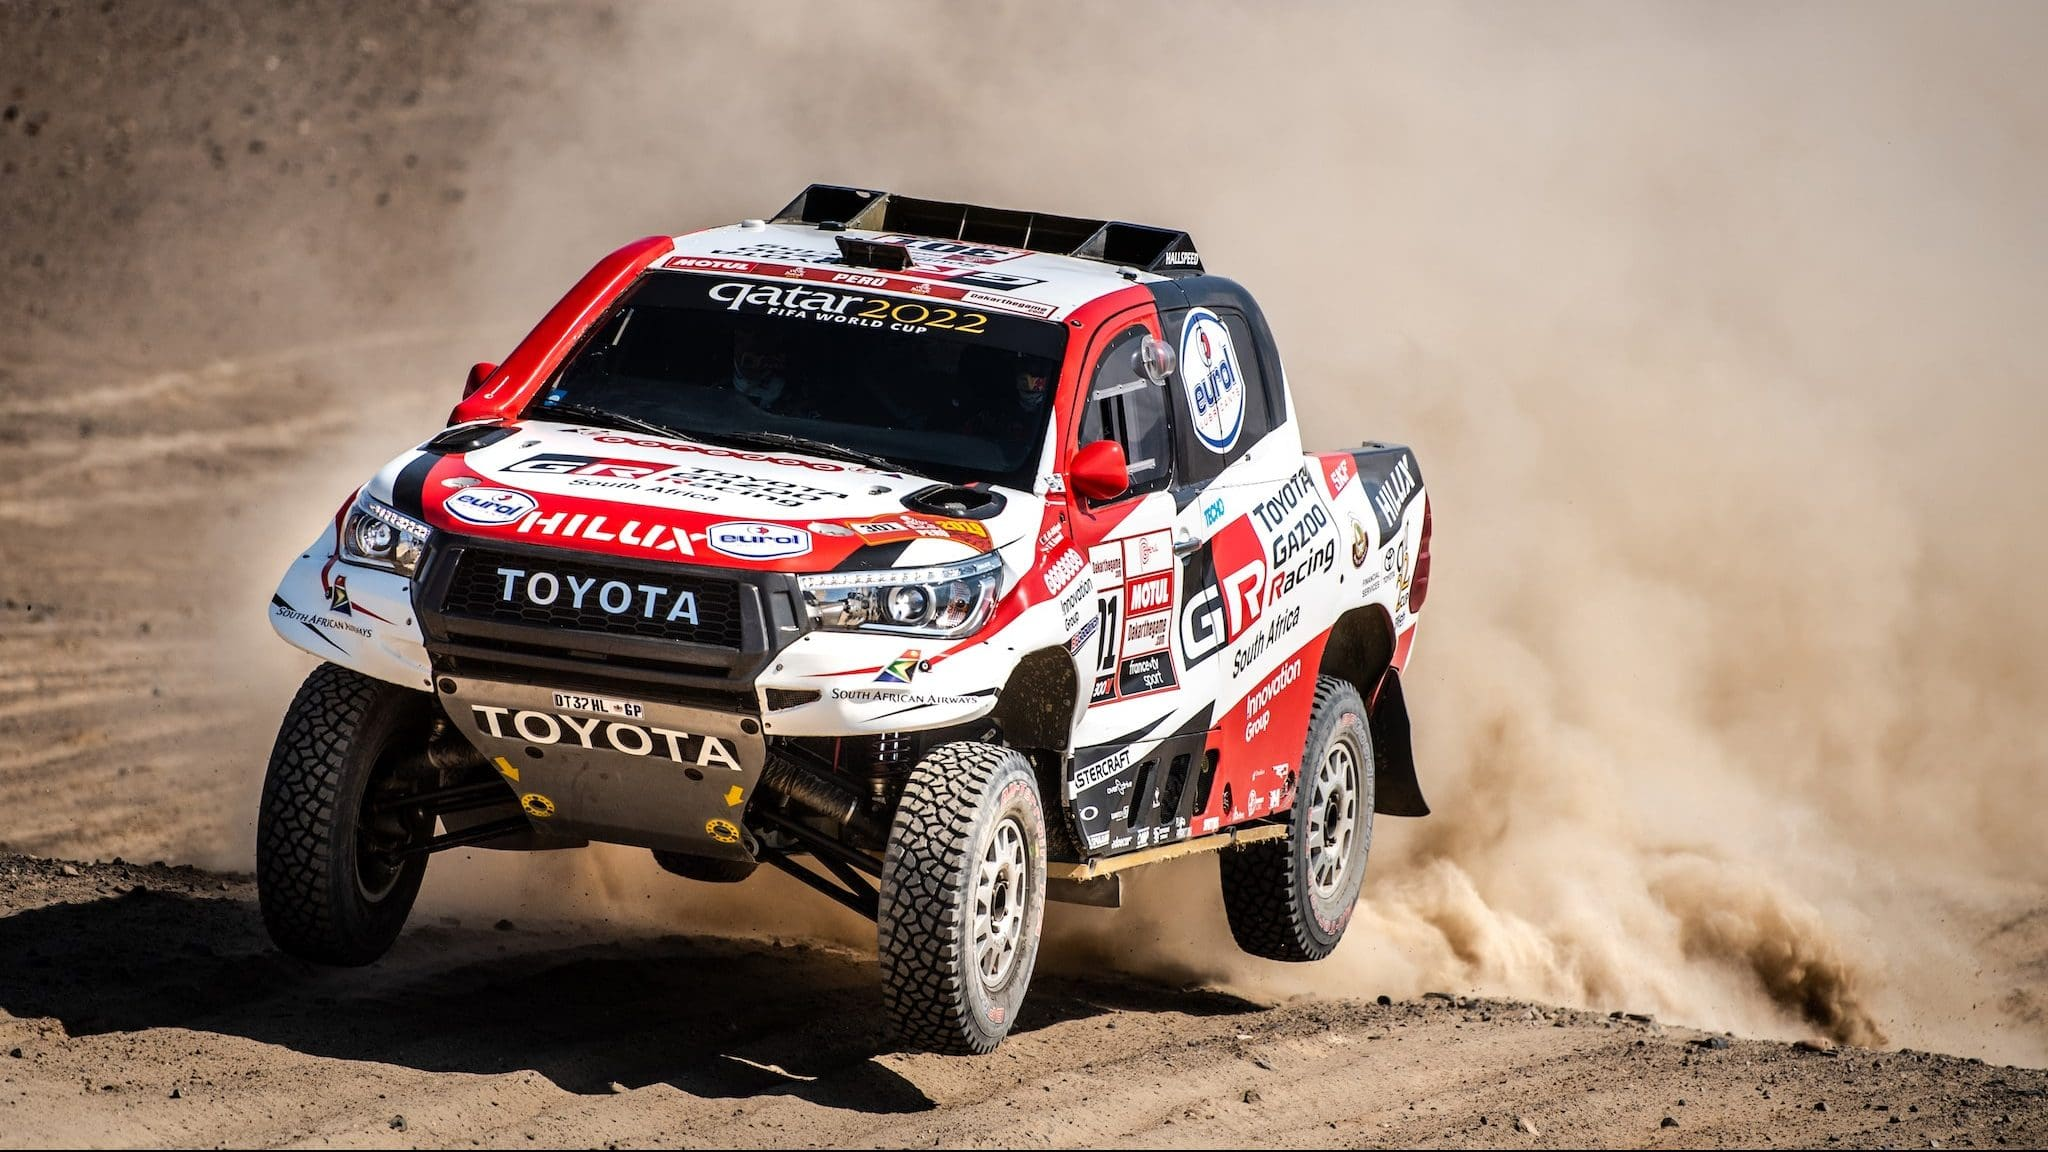 Toyota Tops 2019 Dakar Rally; Takes Cars & Truck Categories, Tops Production Division